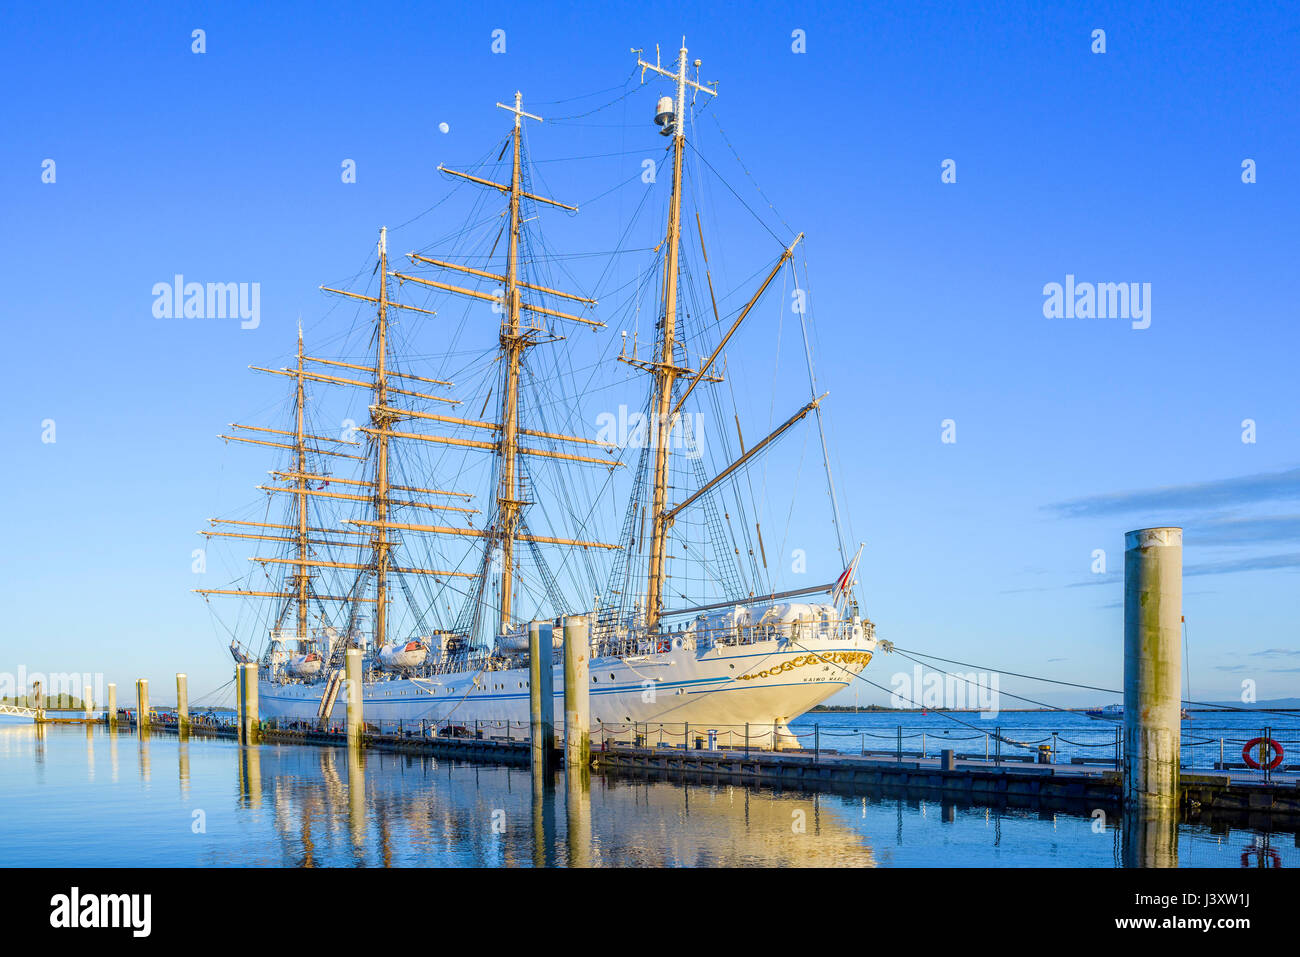 Japanese Tall Ship, Kaiwo Maru, King of the Sea, Ships to Shore Festival, Richmond, British Columbia, Canada. - Stock Image